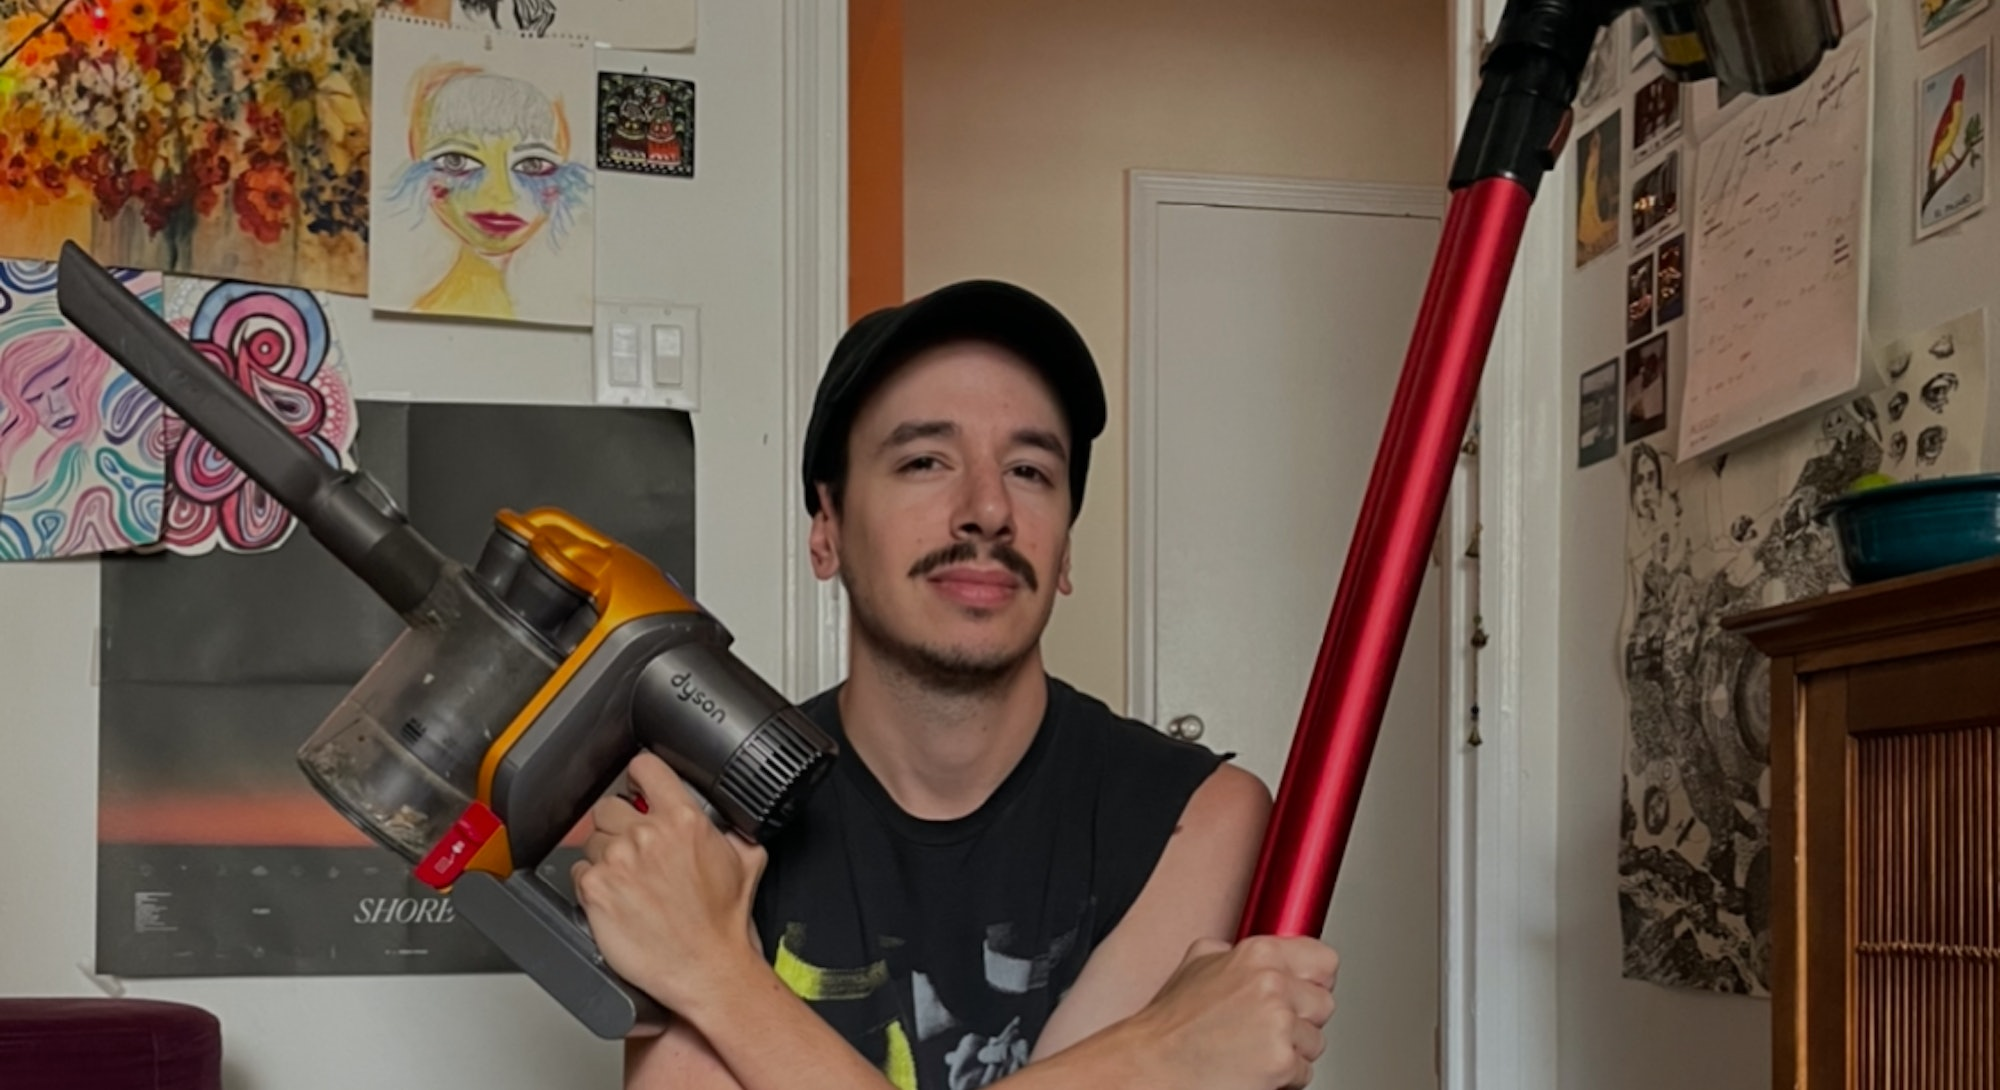 James Pero (the author) holding two vacuums